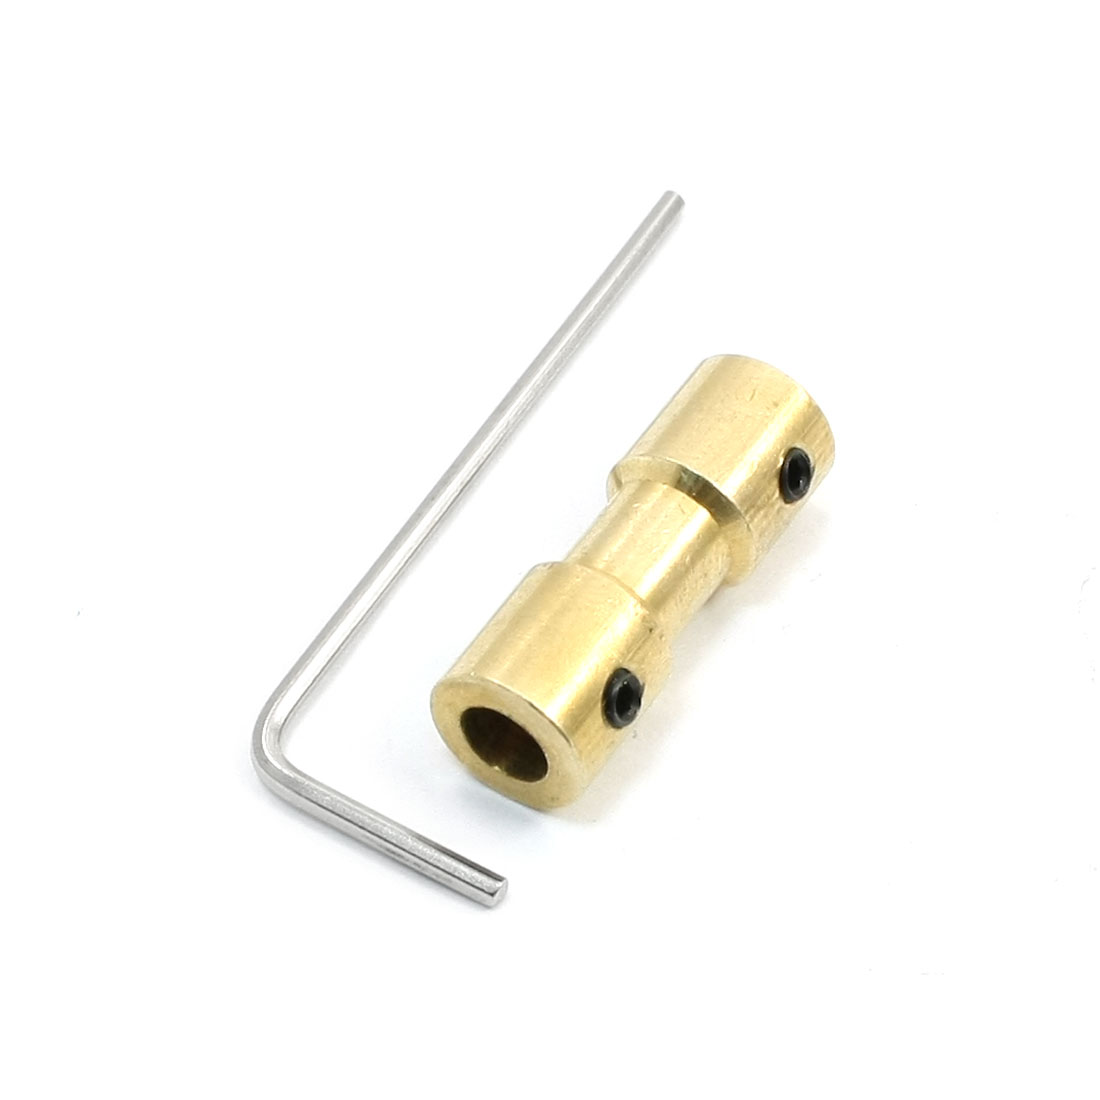 3mm x 5mm Coupler Connector Adapter for RC Airplane Boat Motor